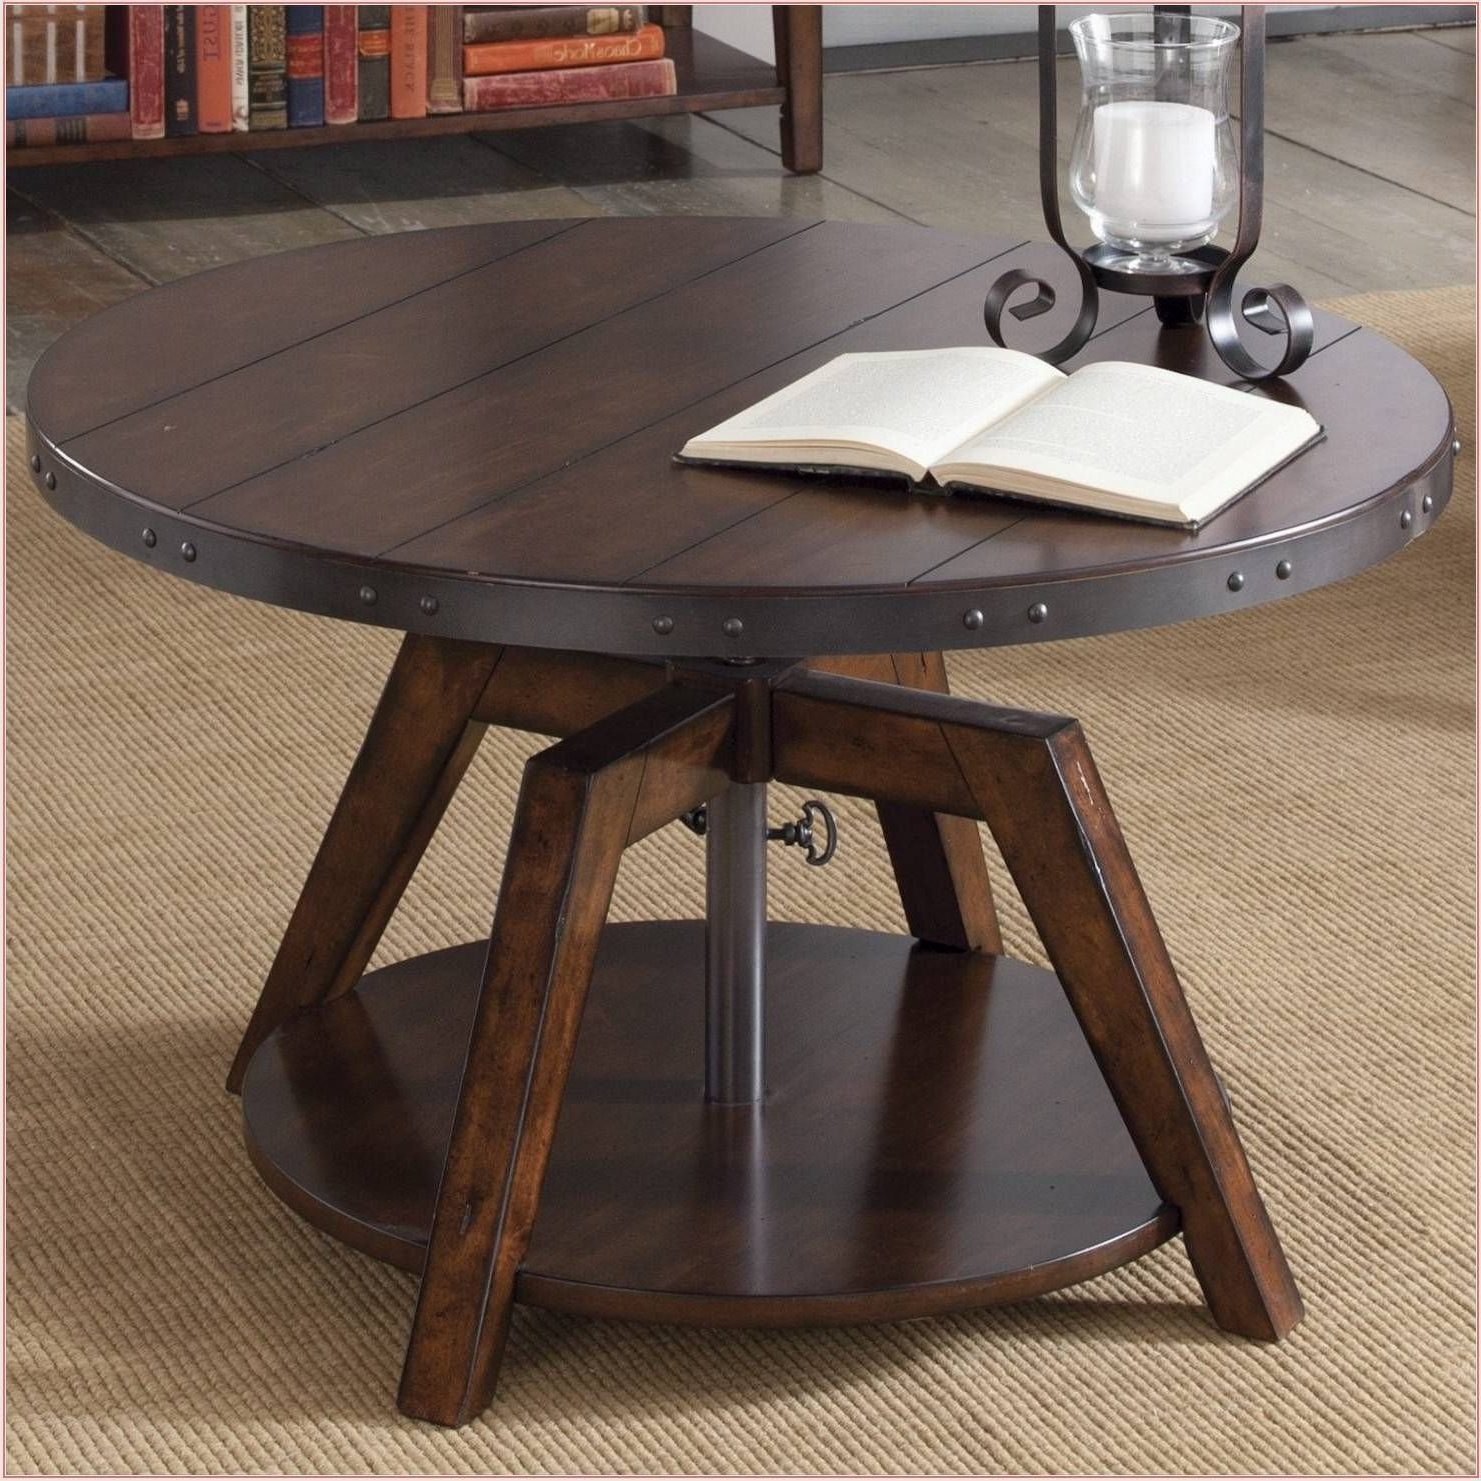 Newest Wood Kitchen Dining Tables With Removable Center Leaf throughout 50+ Amazing Convertible Coffee Table To Dining Table